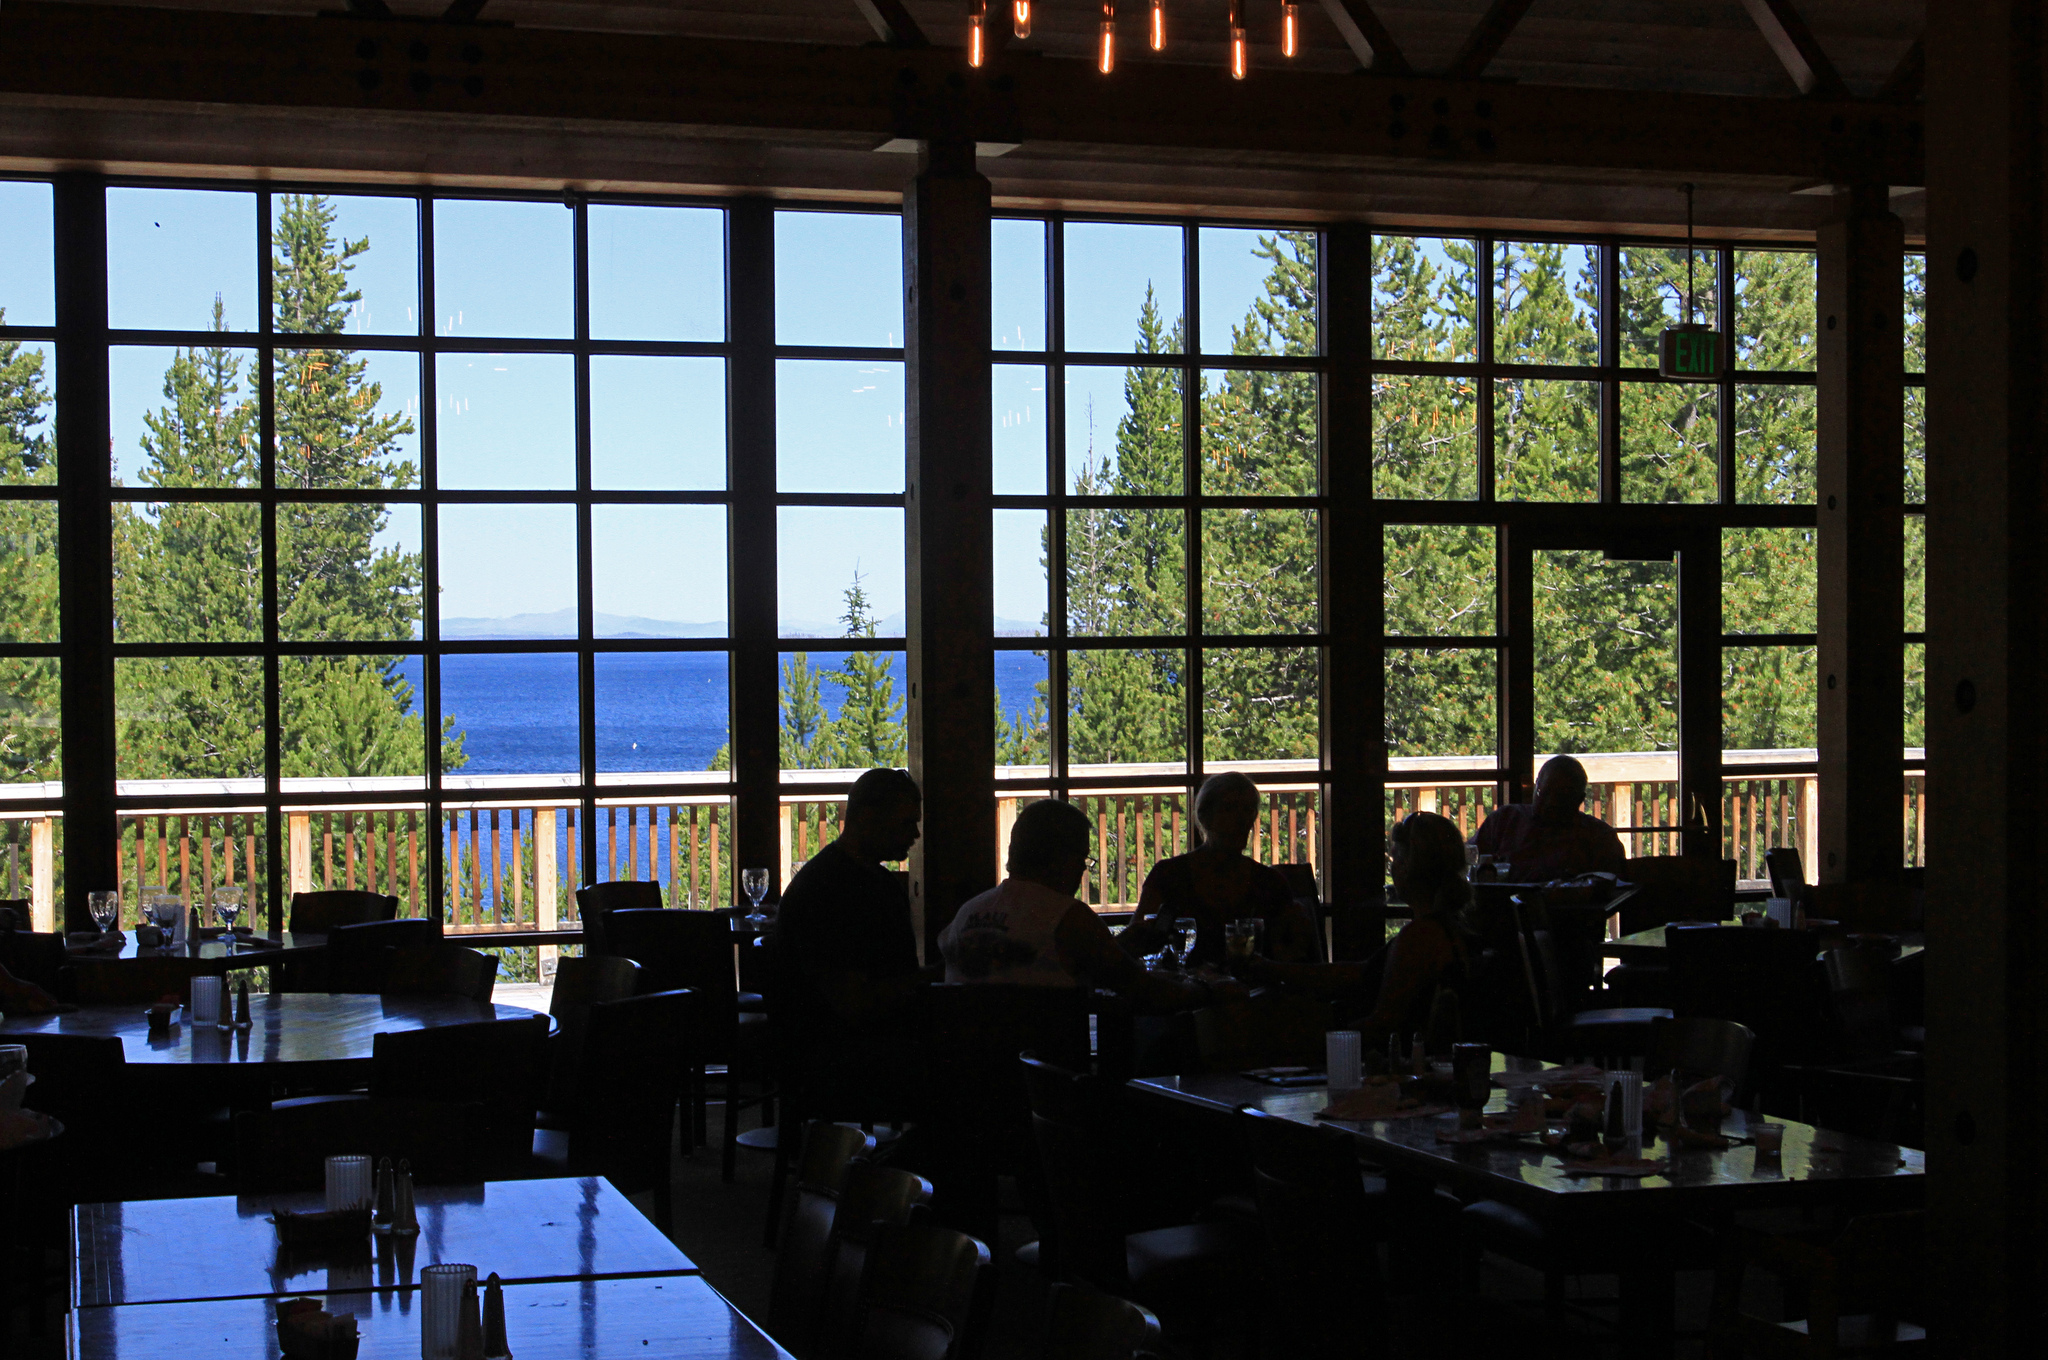 lake yellowstone hotel dining room. Grant Village Dining Room  Nonetheless stepping inside the Yellowstone Spotlight Insider